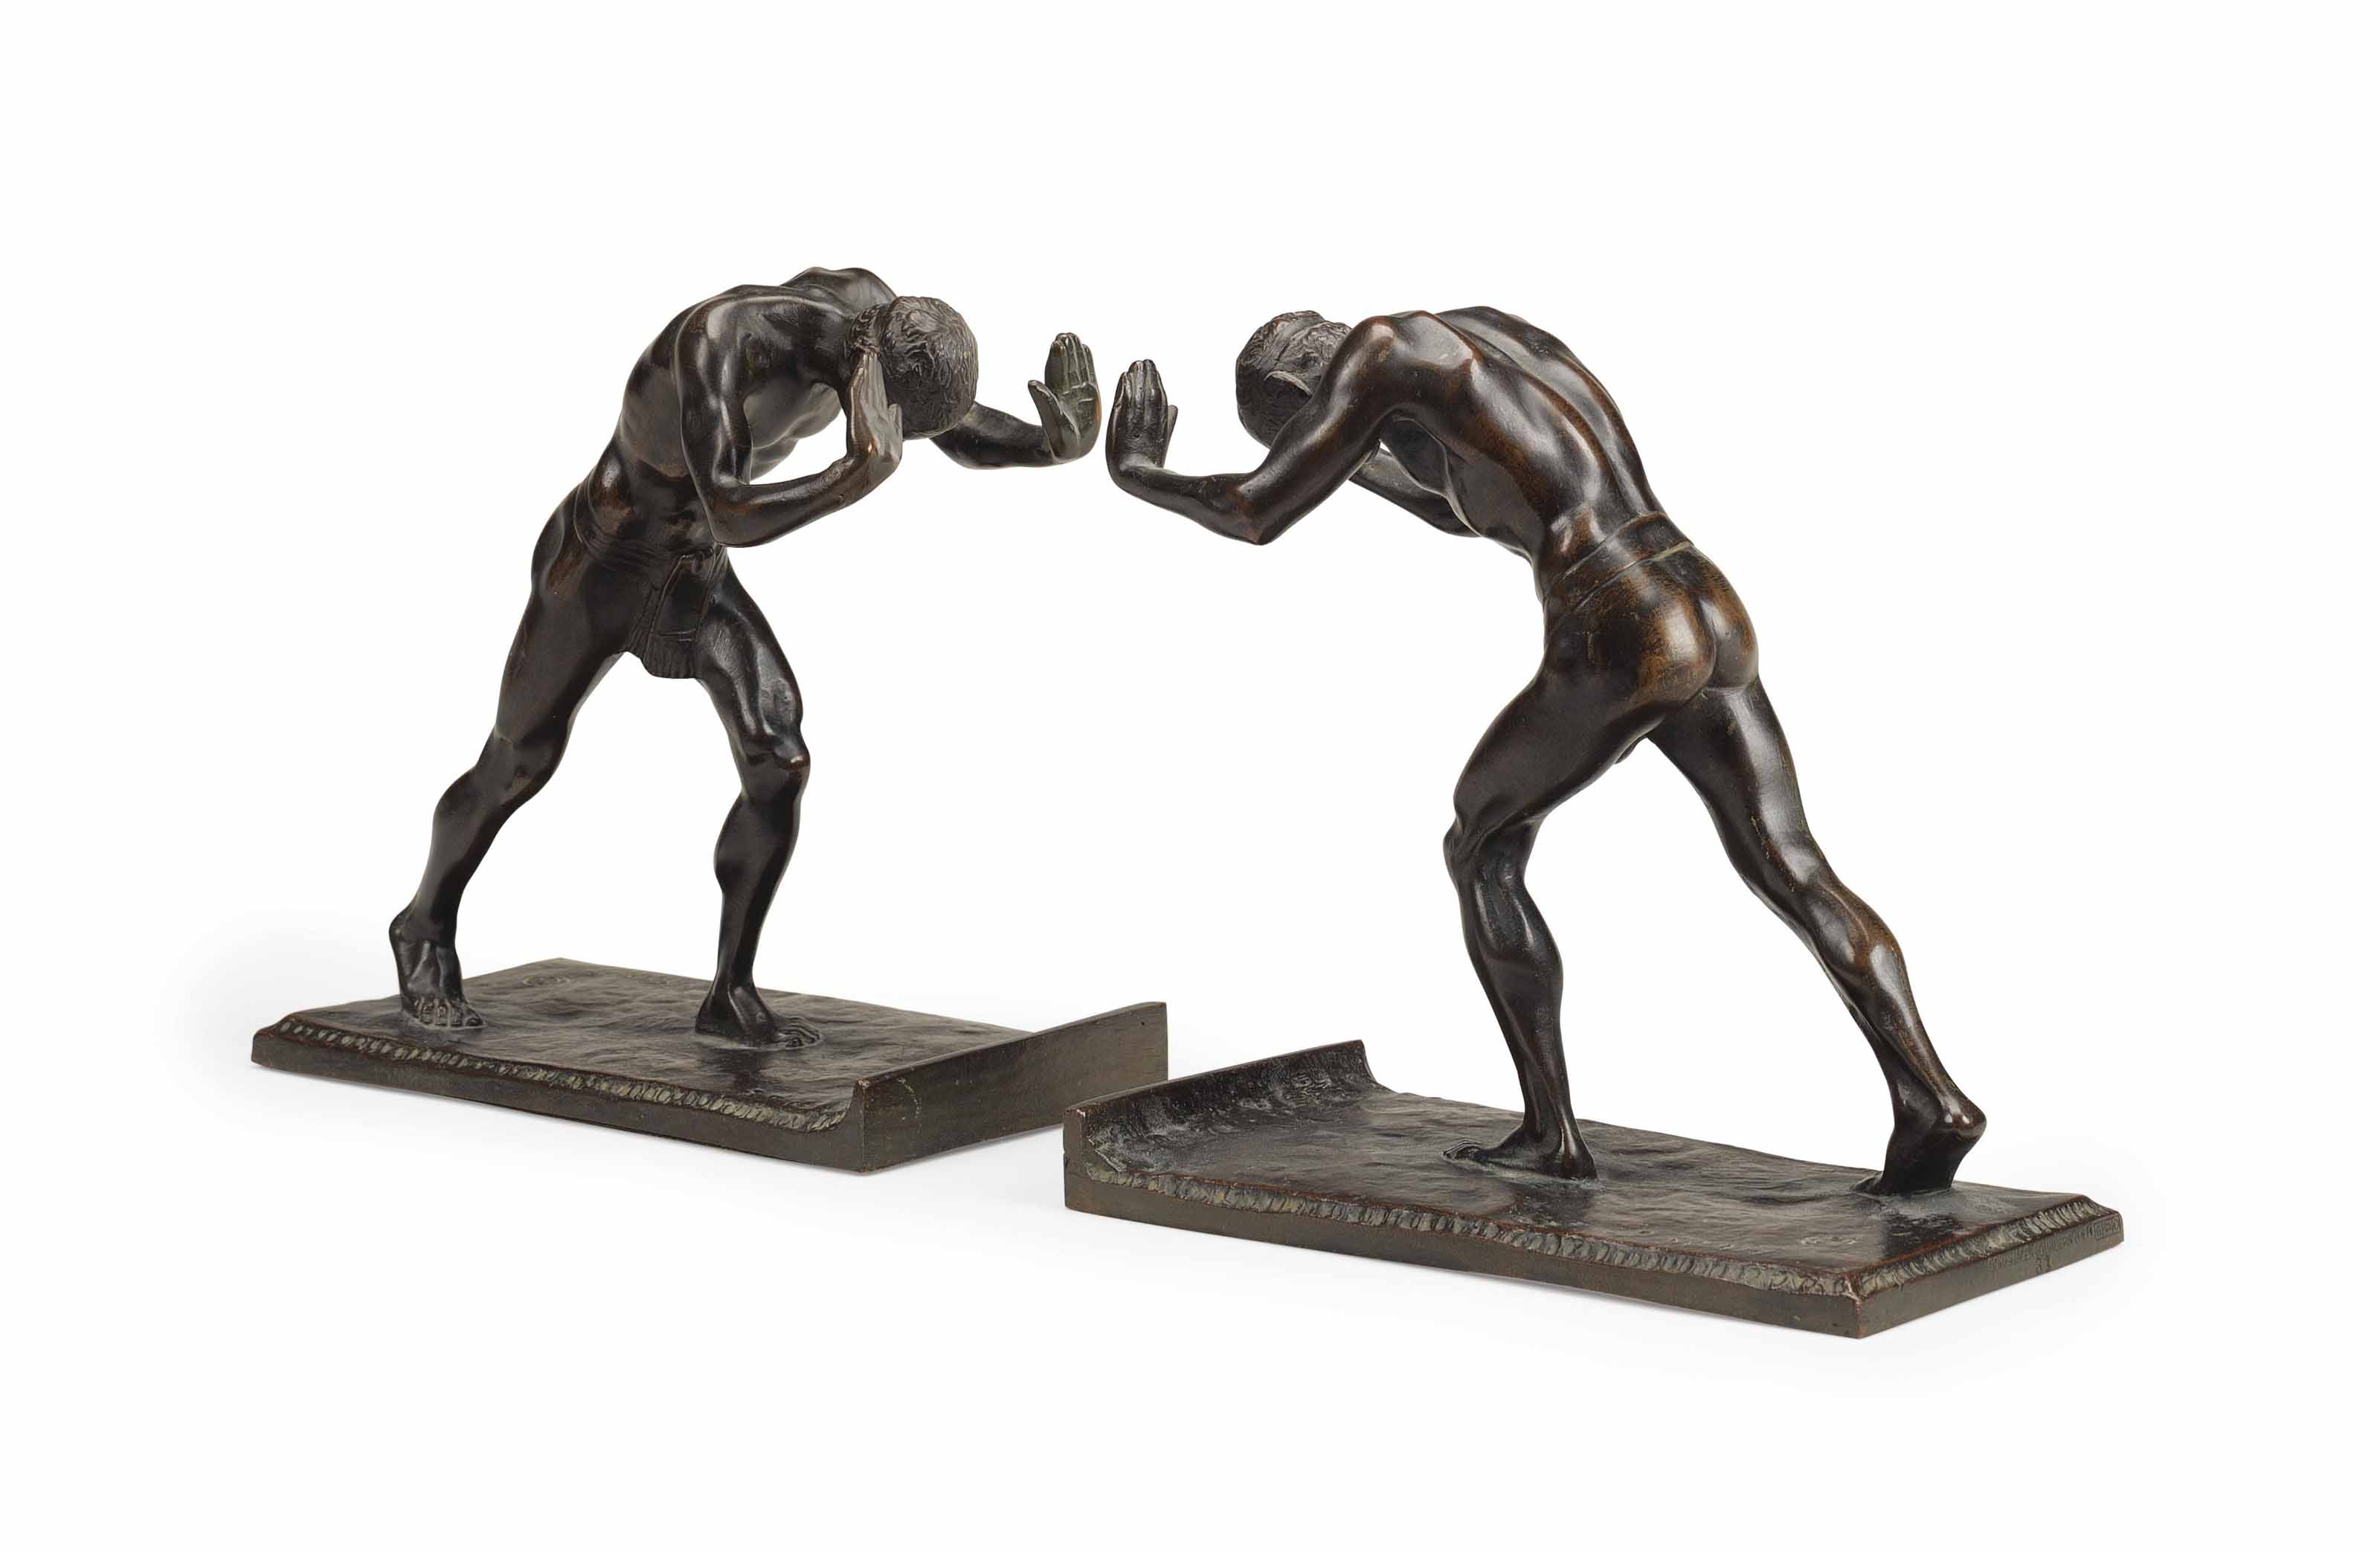 'Pushing Men': A Pair of Bookends